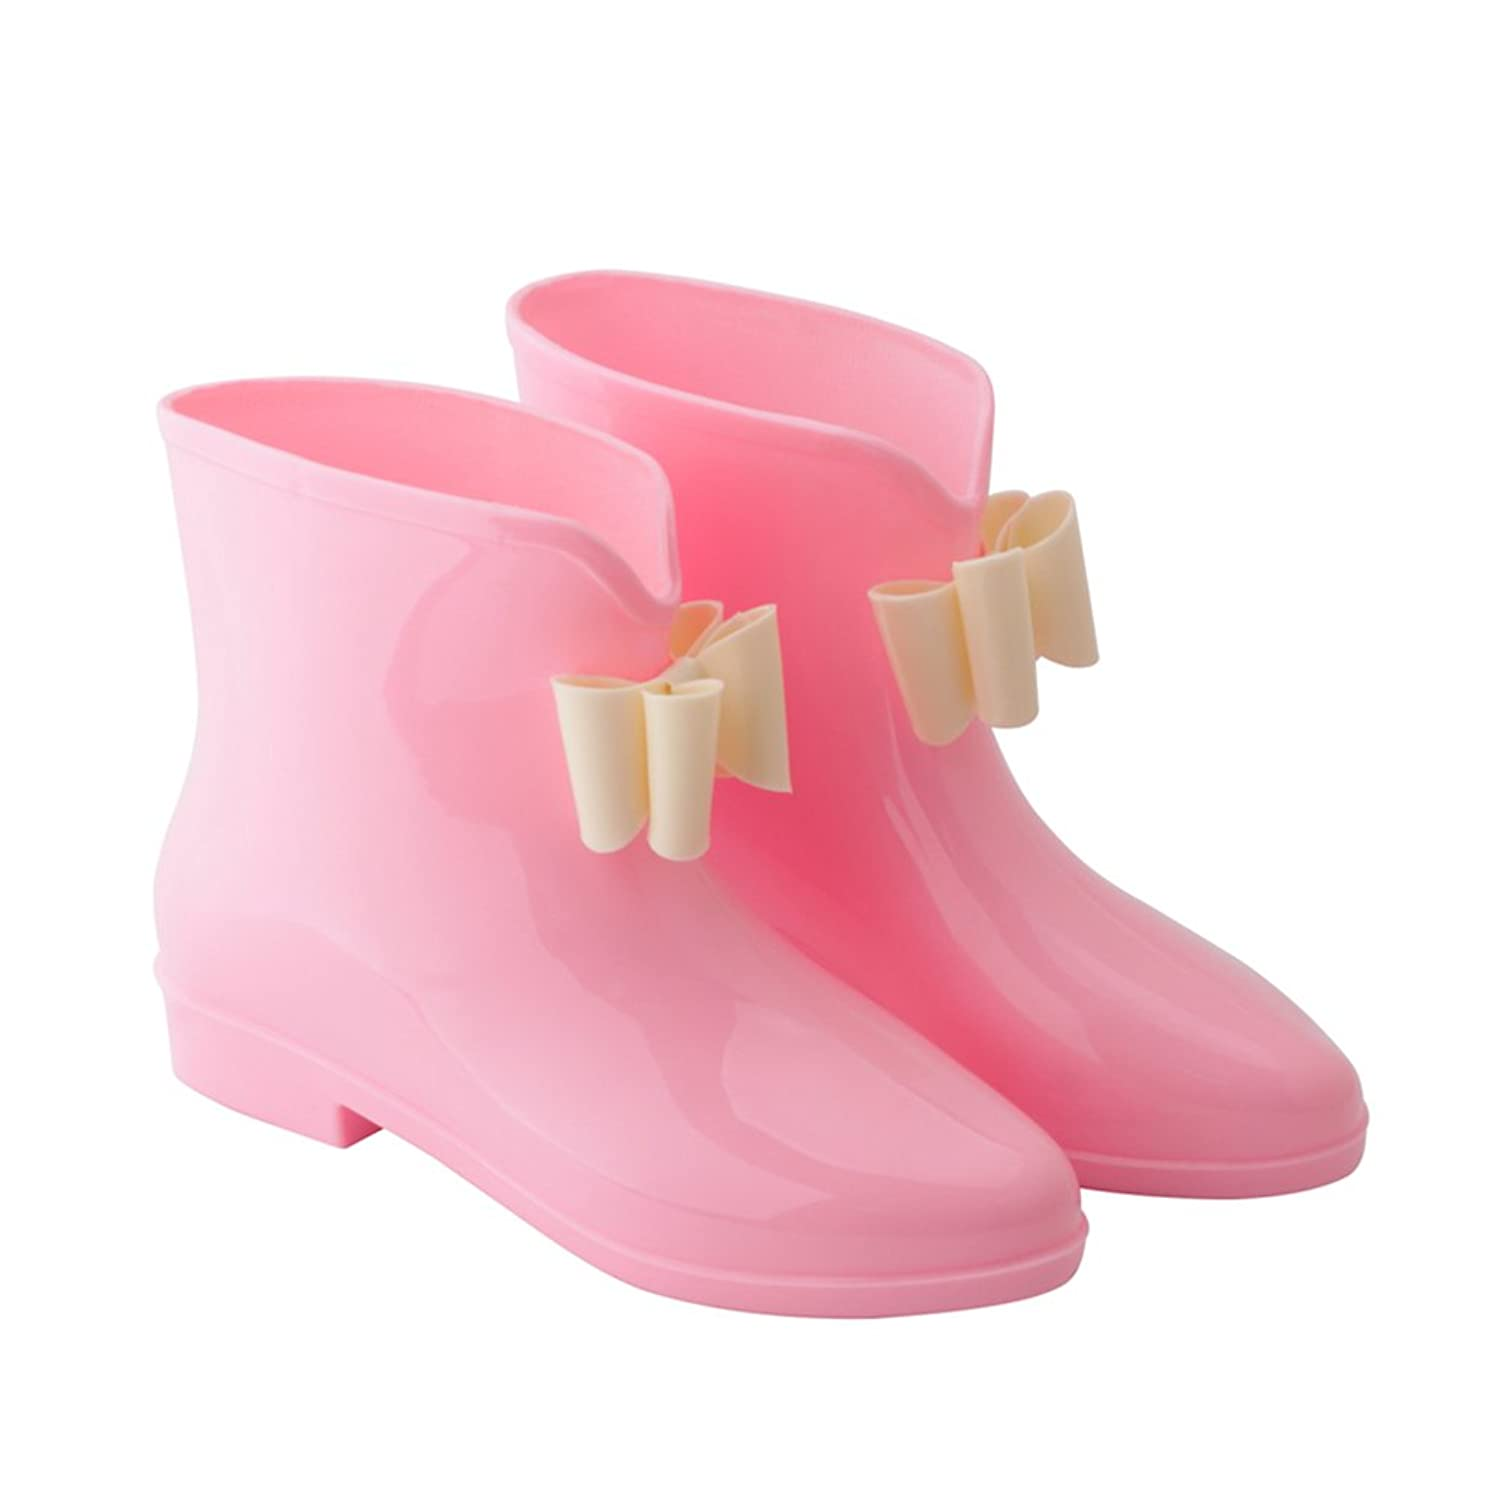 Retro Boots, Granny Boots, 70s Boots OMGard Womens Ankle Rain Boots Low Heel Jelly Bow Rainboots Waterproof Rubber for Garden $19.99 AT vintagedancer.com